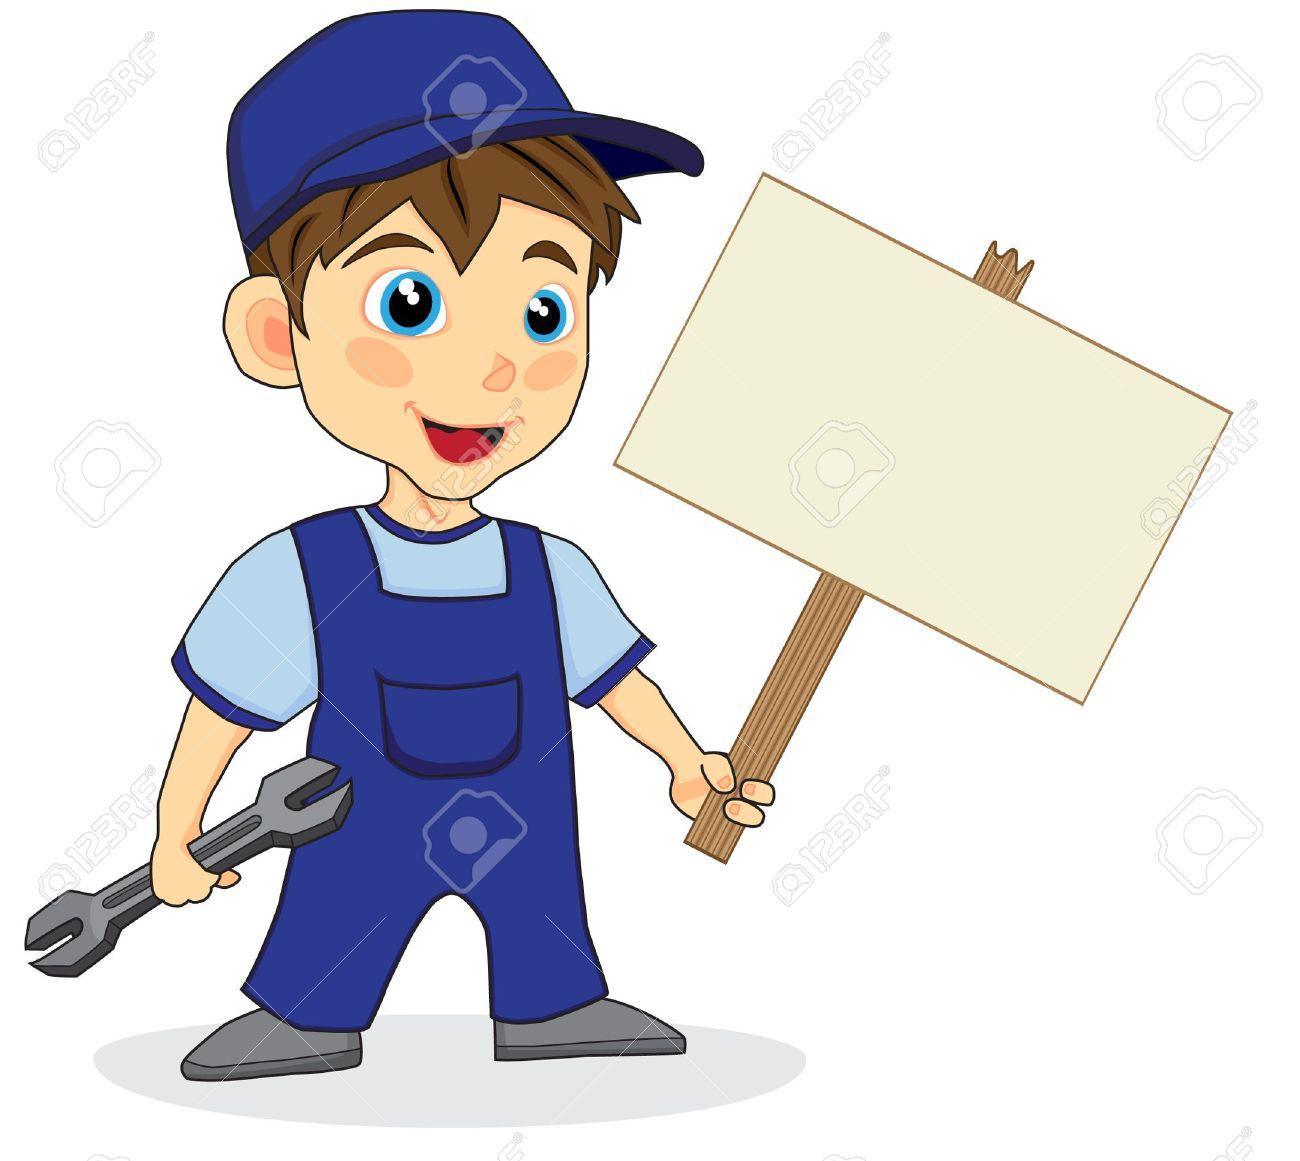 1300x1161 Cute Mechanic Boy With Wood Sign Royalty Free Cliparts, Vectors